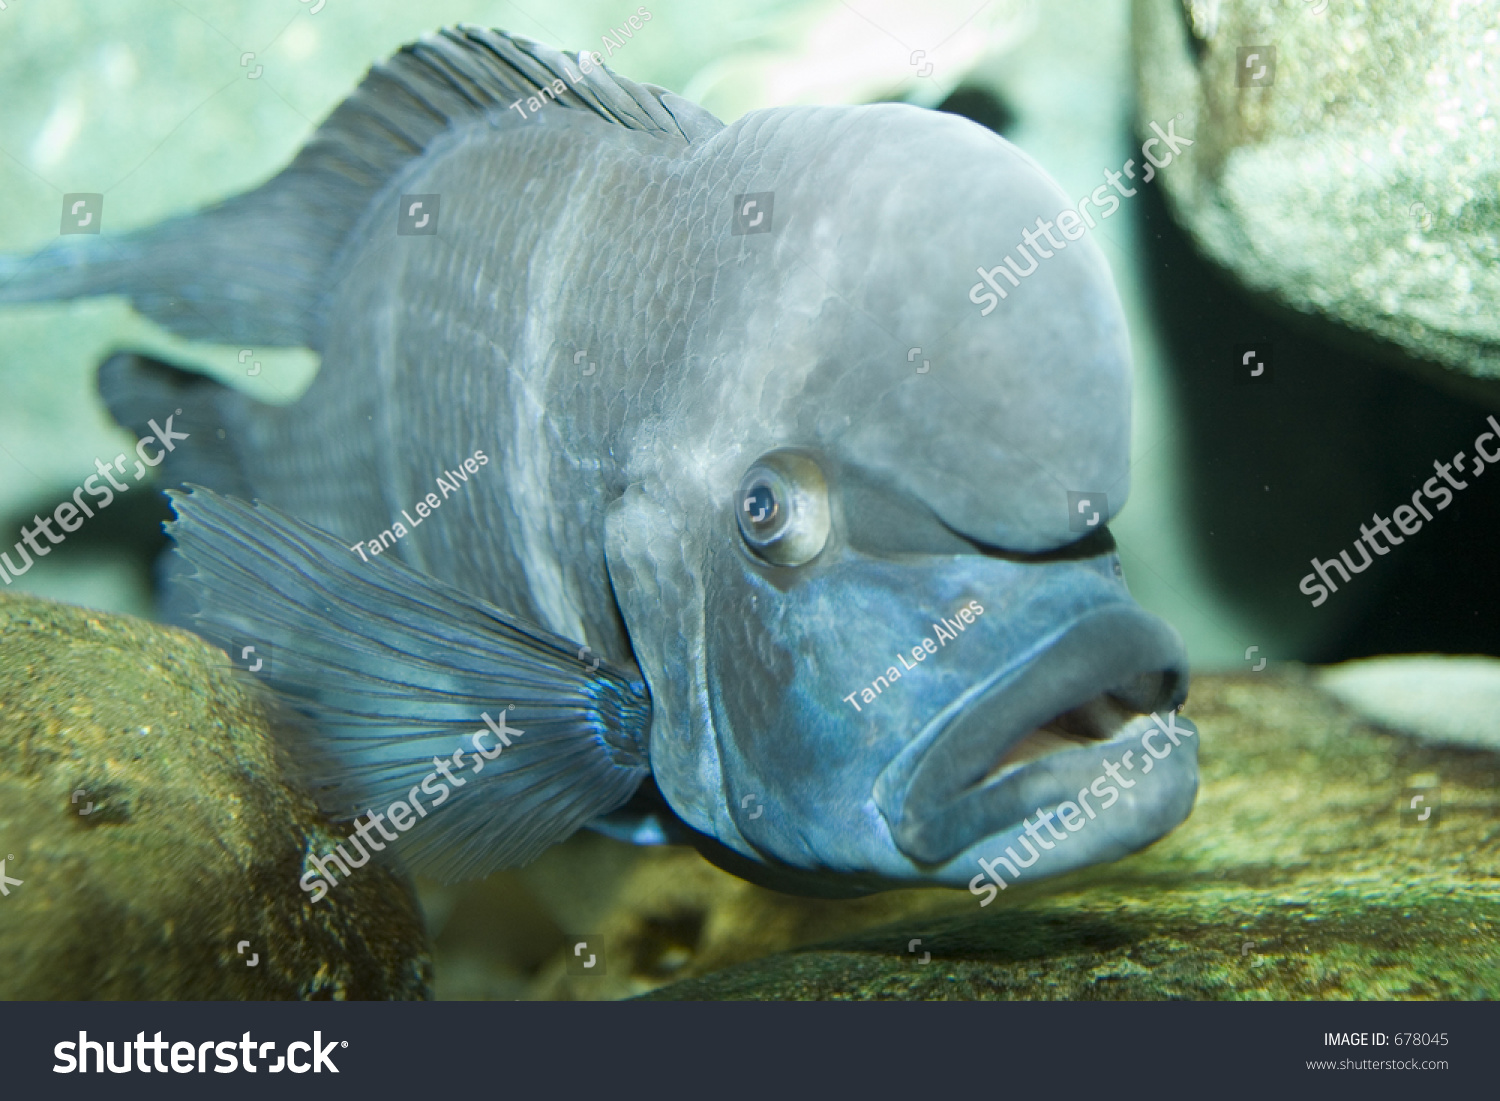 Ugly fish stock photo 678045 shutterstock for Ugly fish pictures